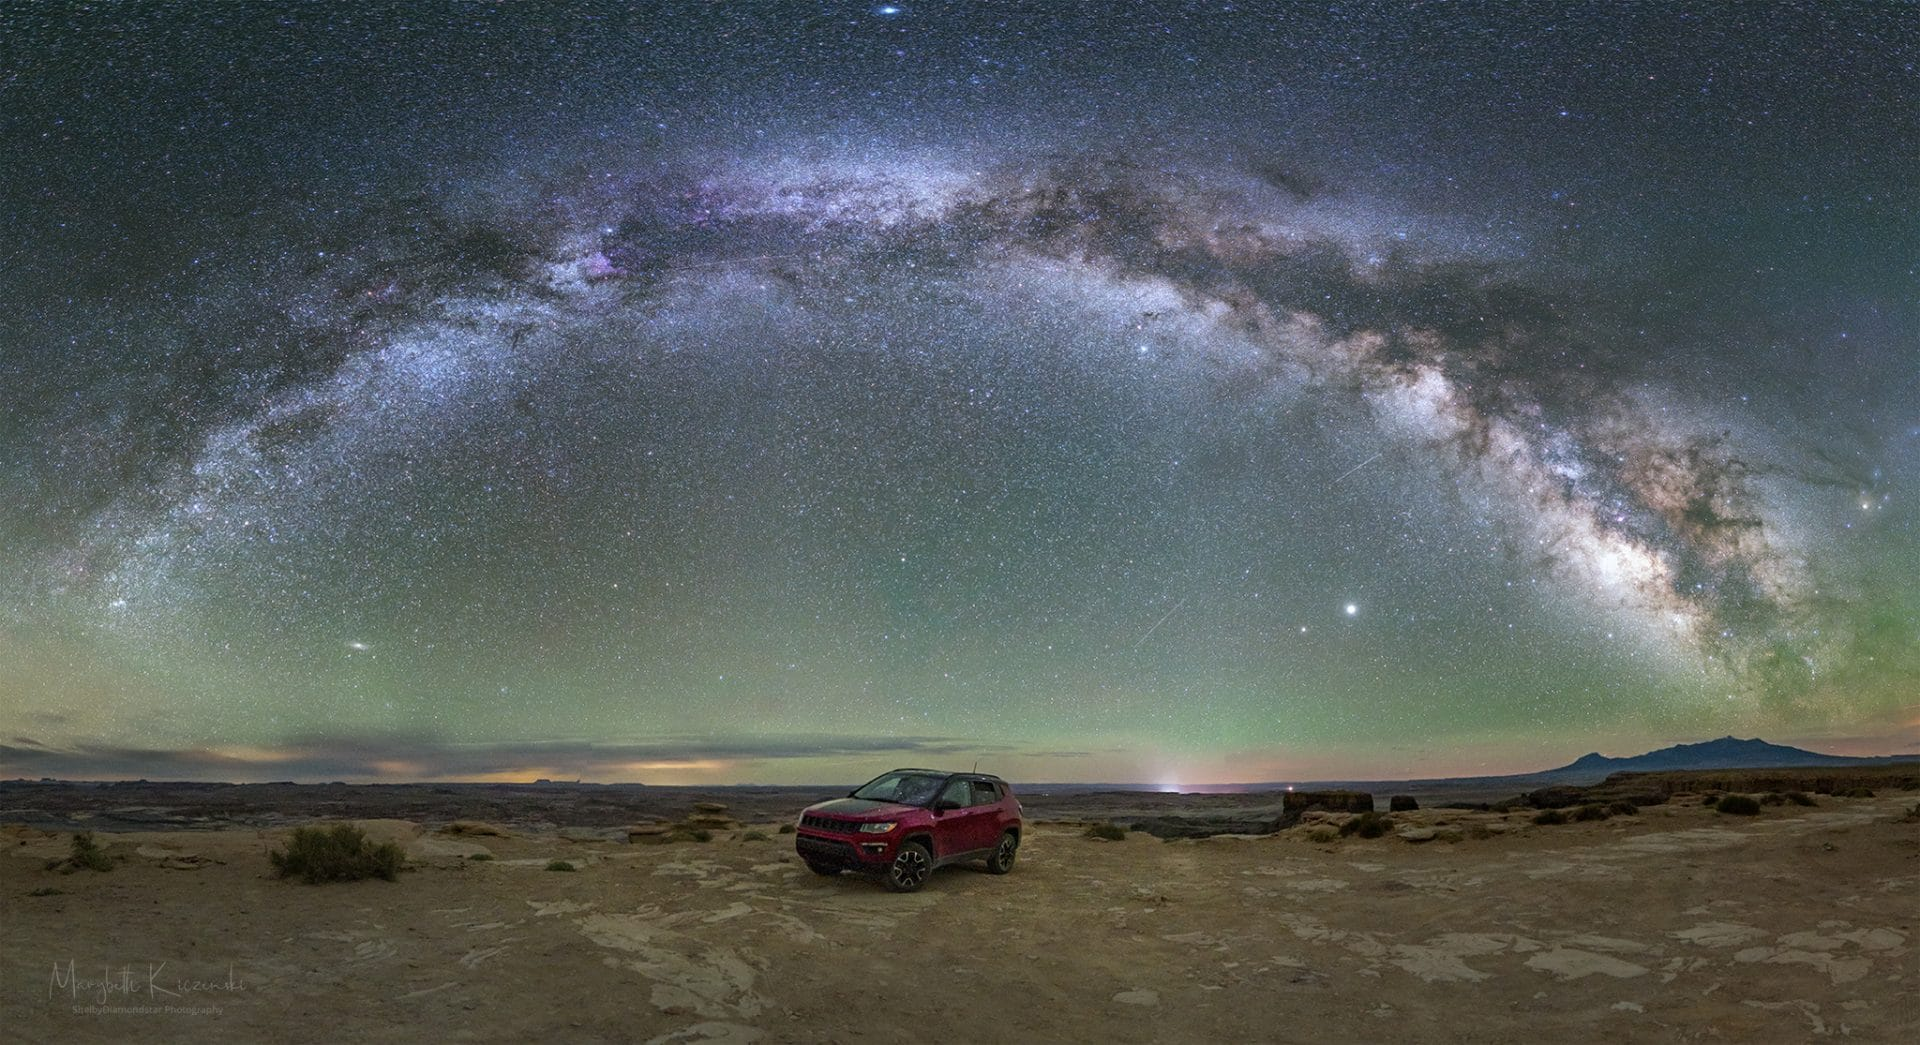 Little Jeep and the Milky Way Rainbow. Copyright 2020 MaryBeth Kiczenski.